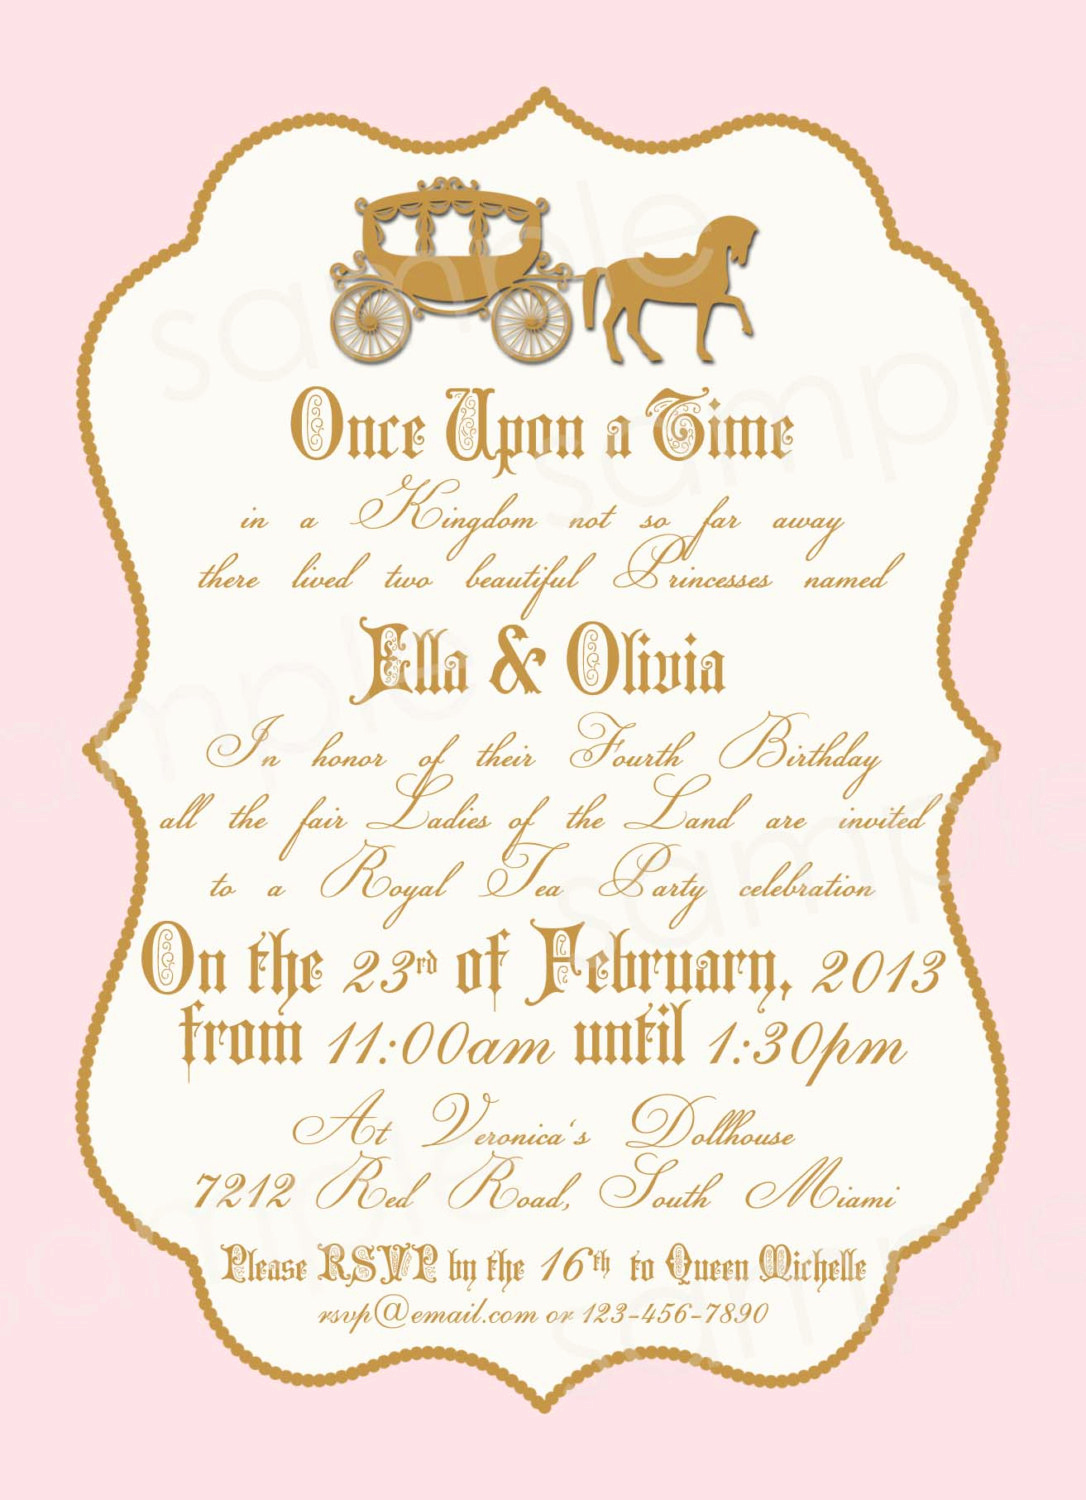 Princess Party Invitation Ideas Awesome Royal Princess Birthday Party Invitation Diy by Modpoddesigns